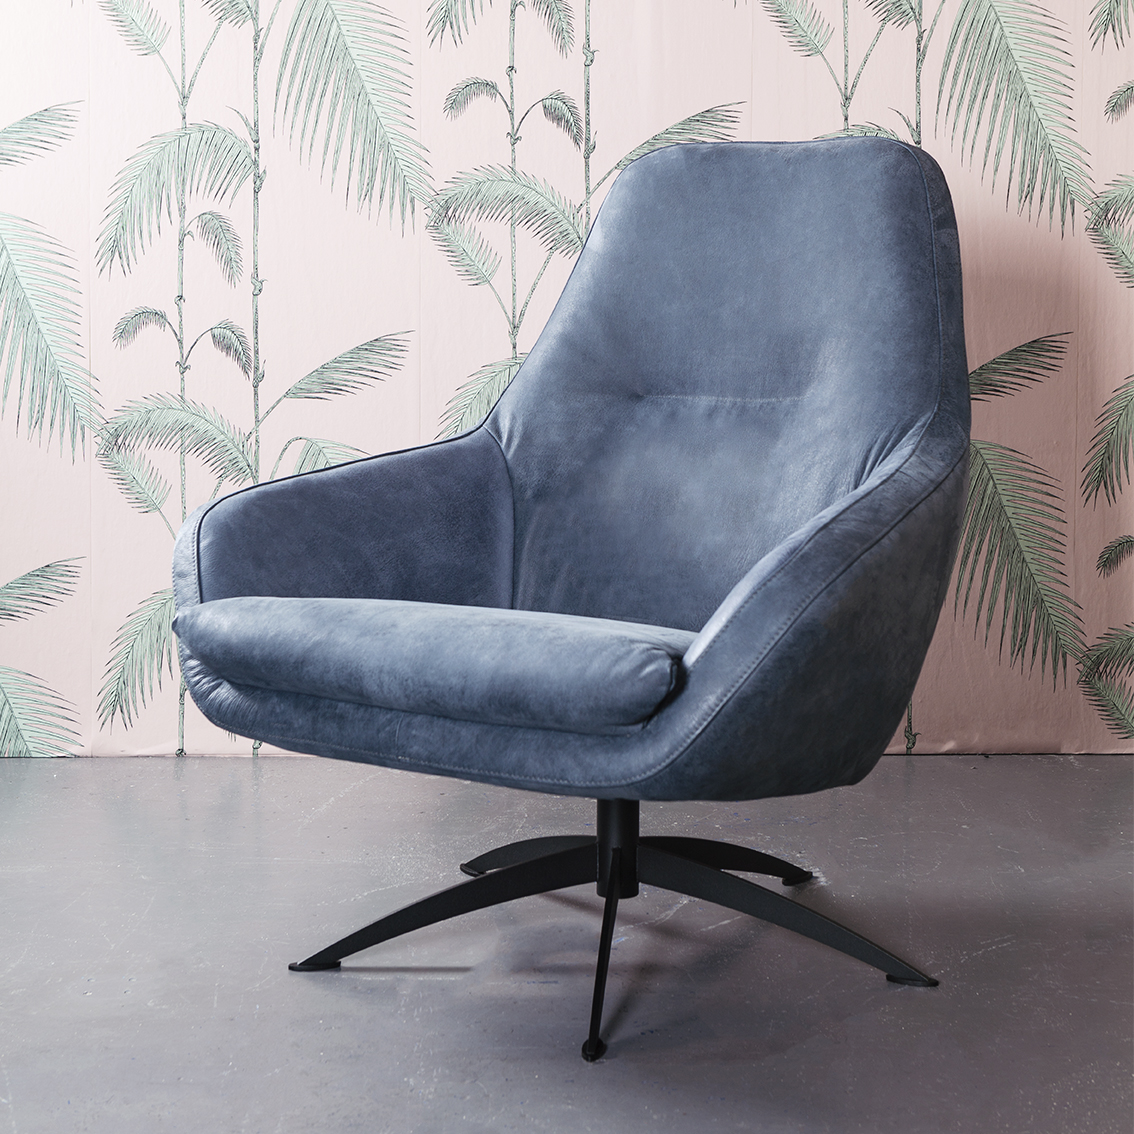 Fauteuil Wit Stof.Fauteuil Nightfall Leer Of Stof Home Stock